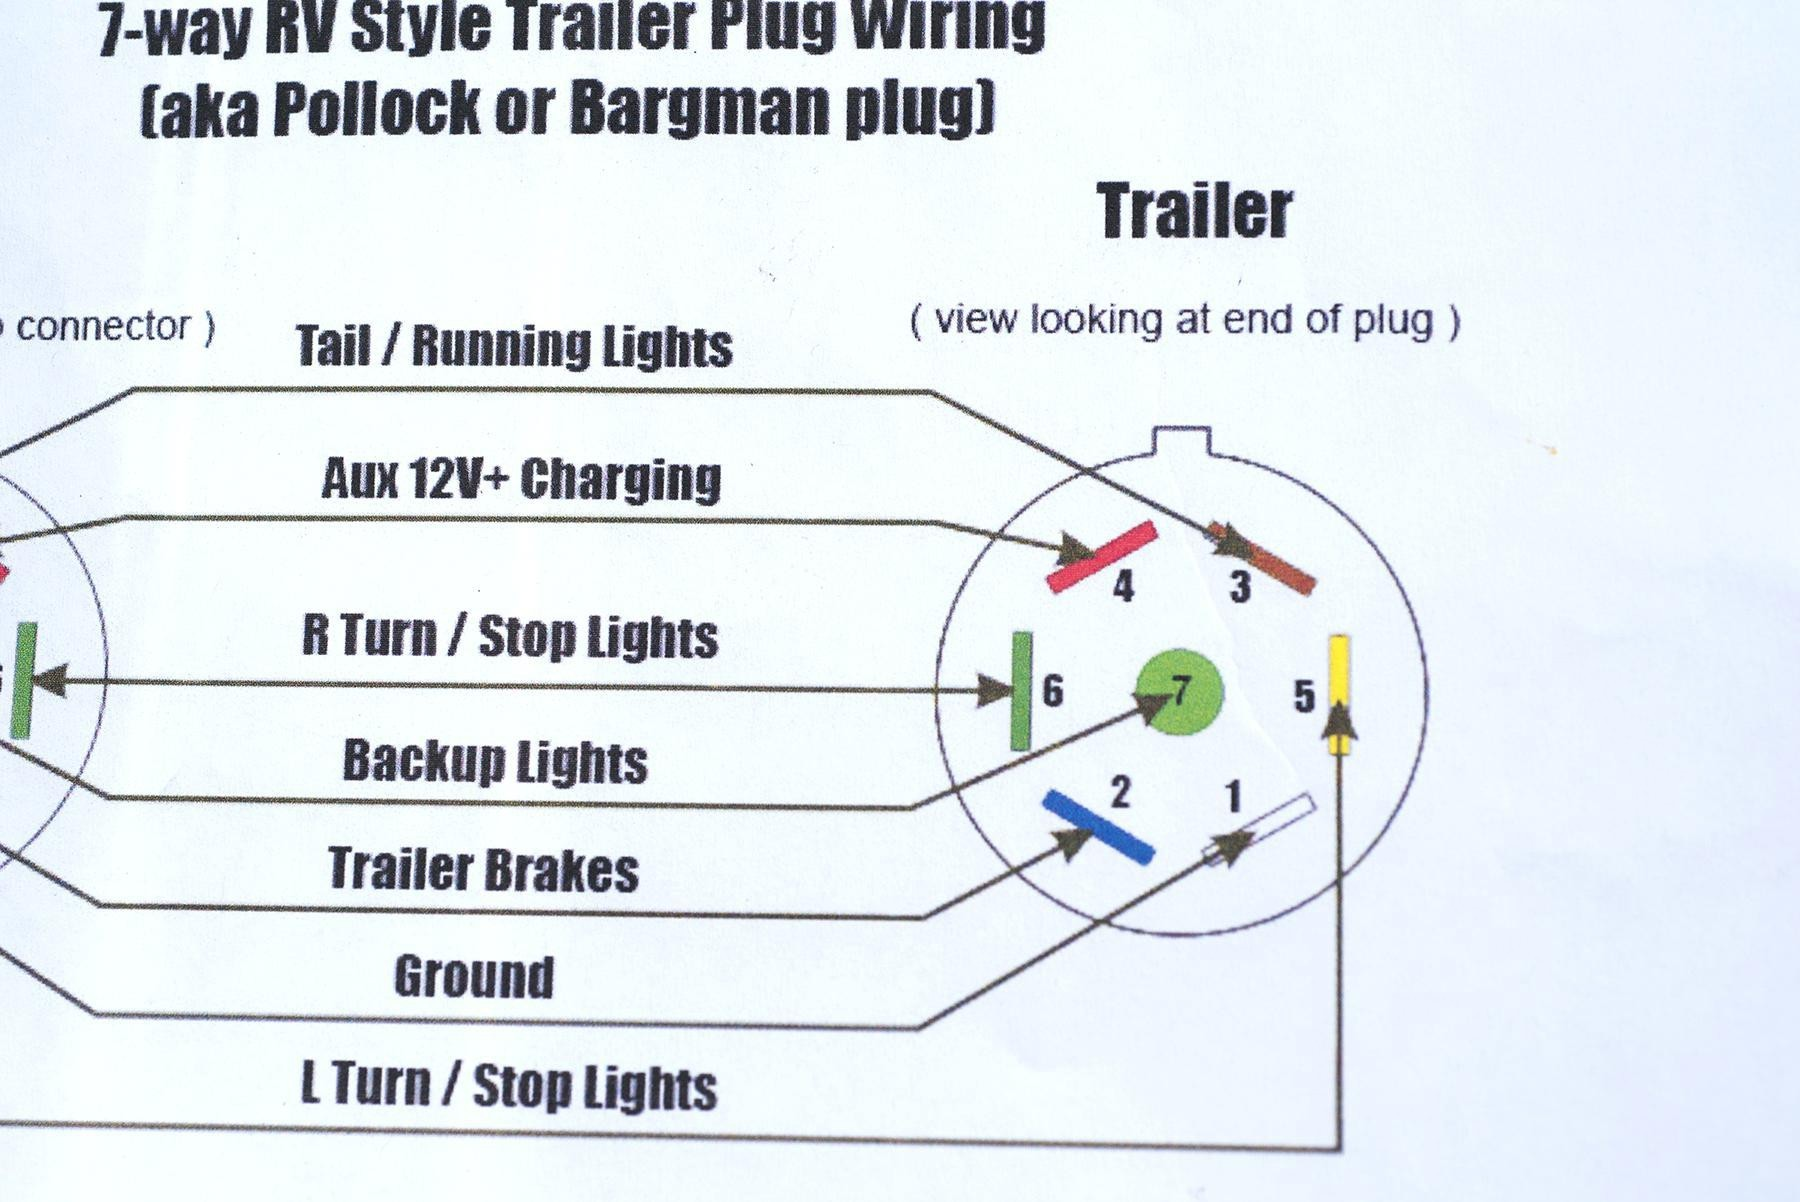 5 Pin Trailer Wiring Diagram ford Expedition 7 Pin Wiring Diagram